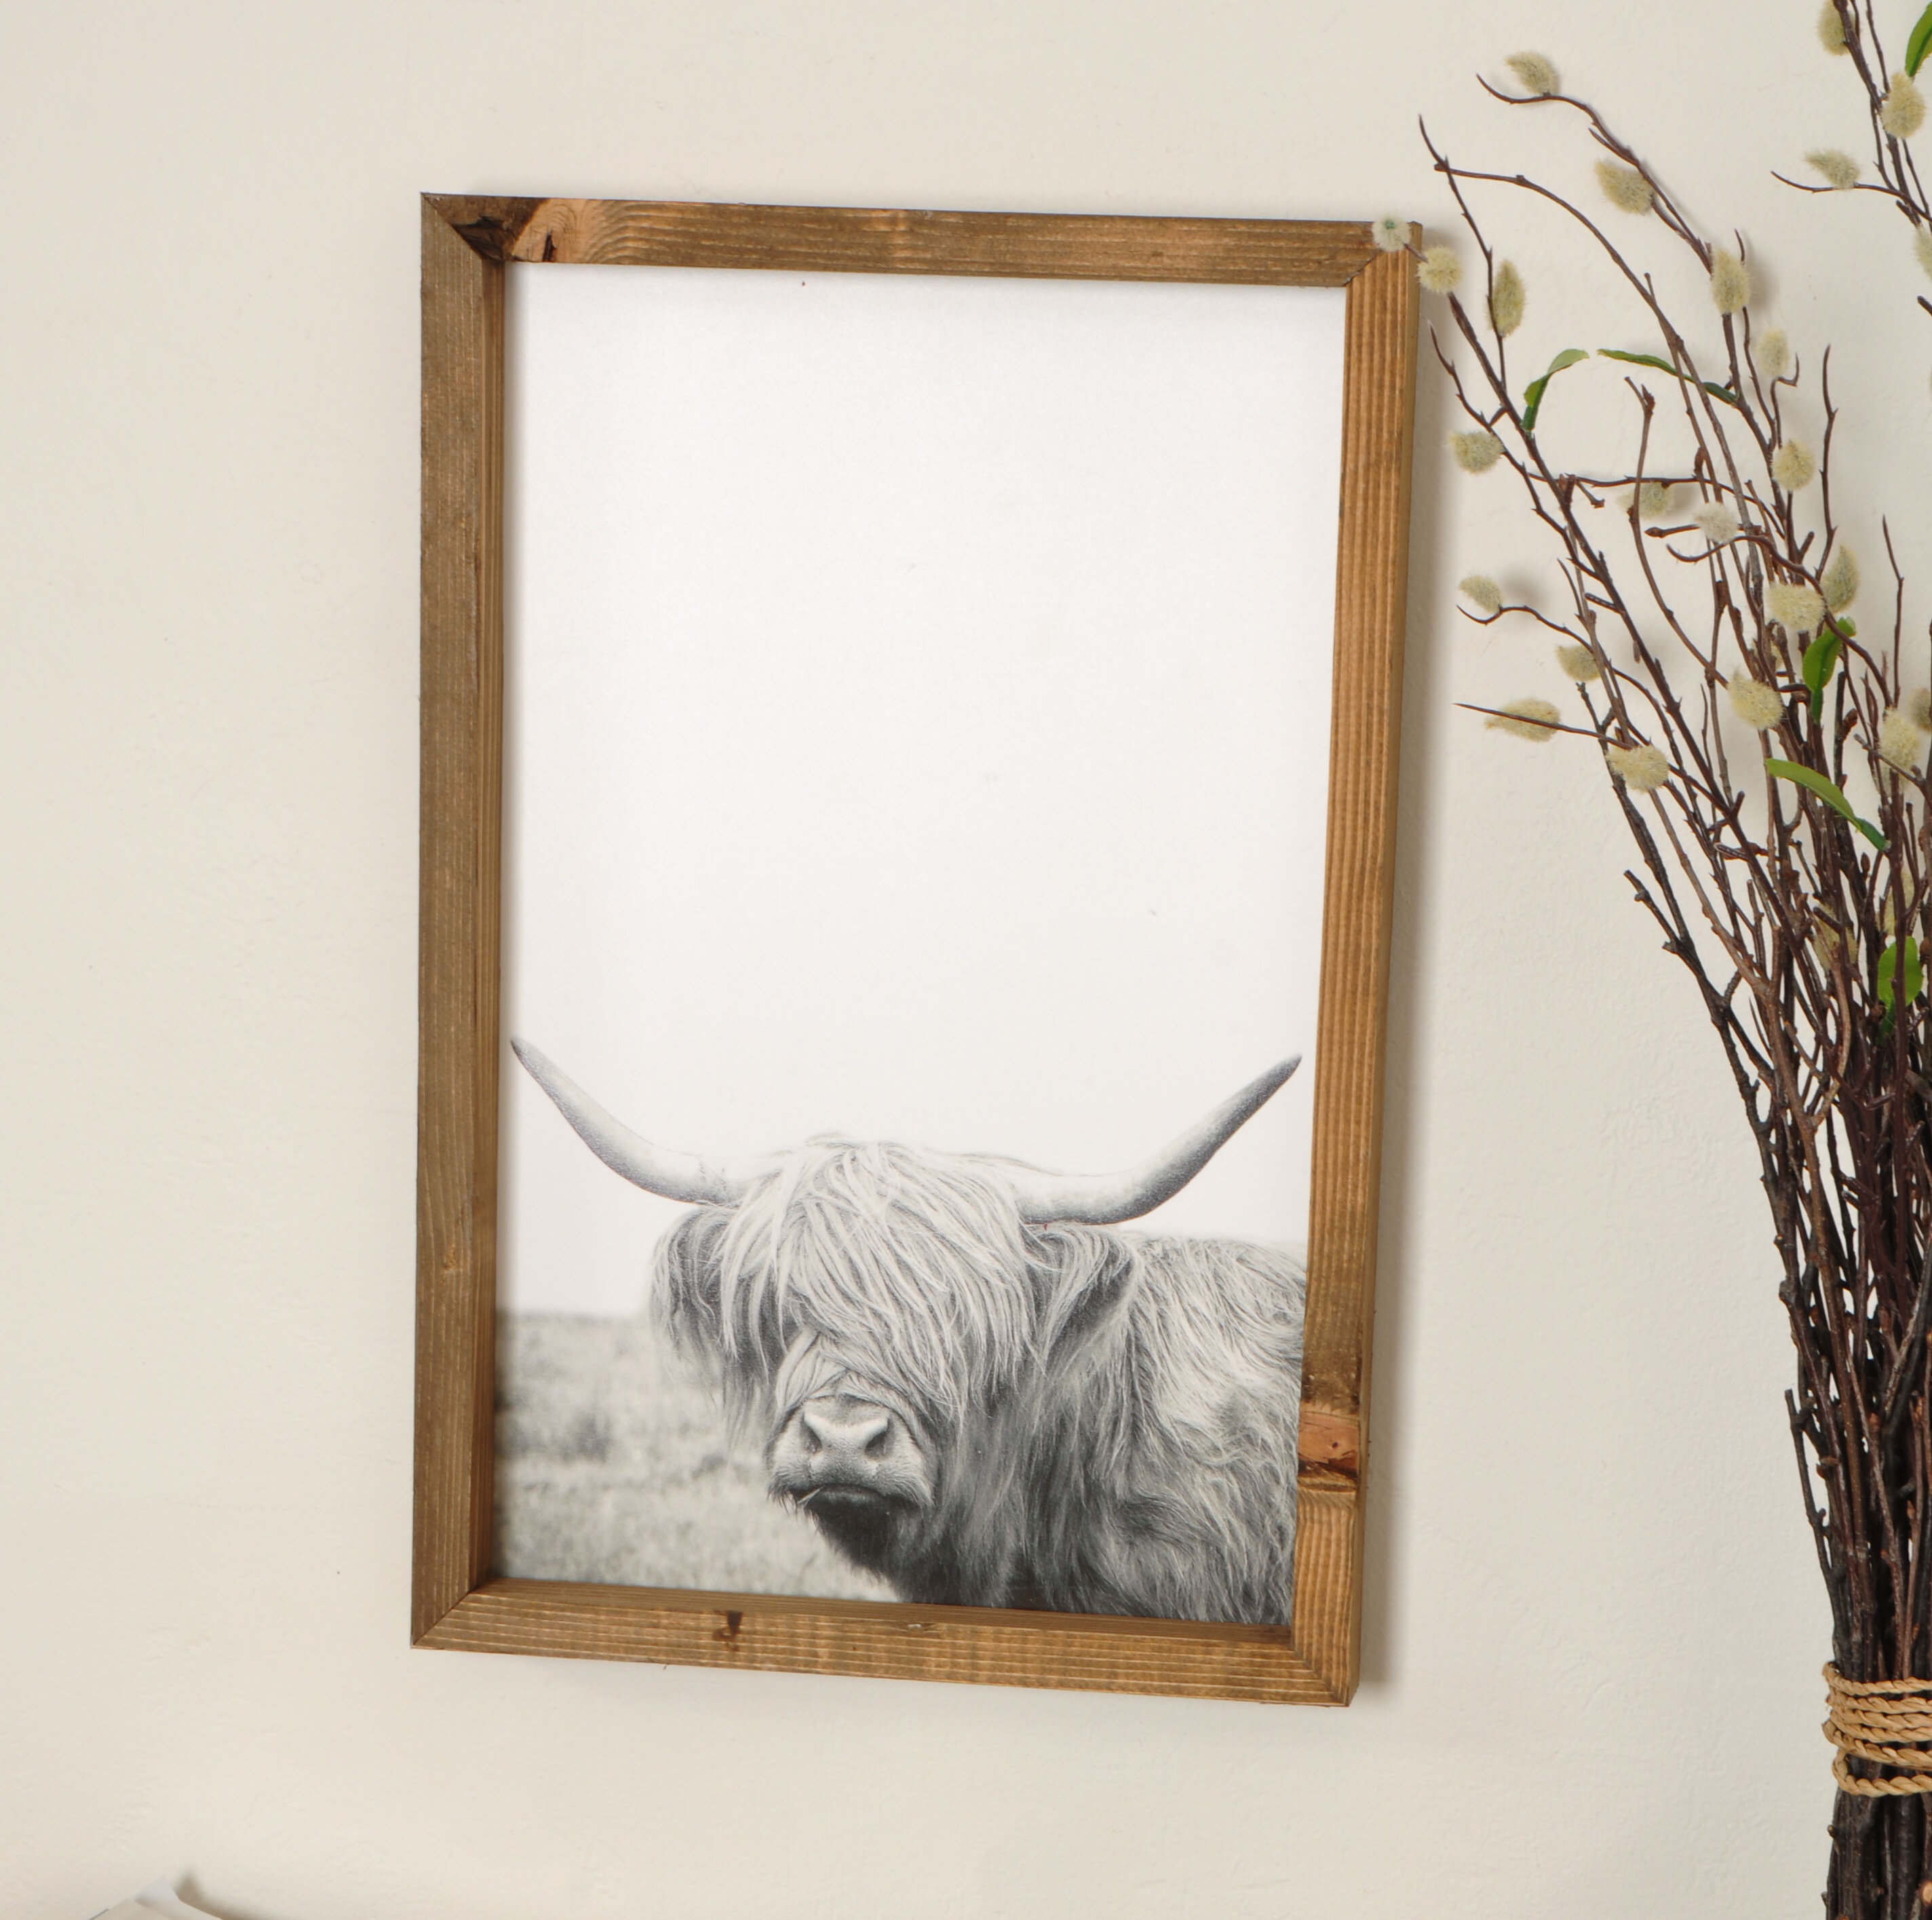 Foundry Select Rustic Bull Picture Frame Photograph Print On Plastic Acrylic Wayfair